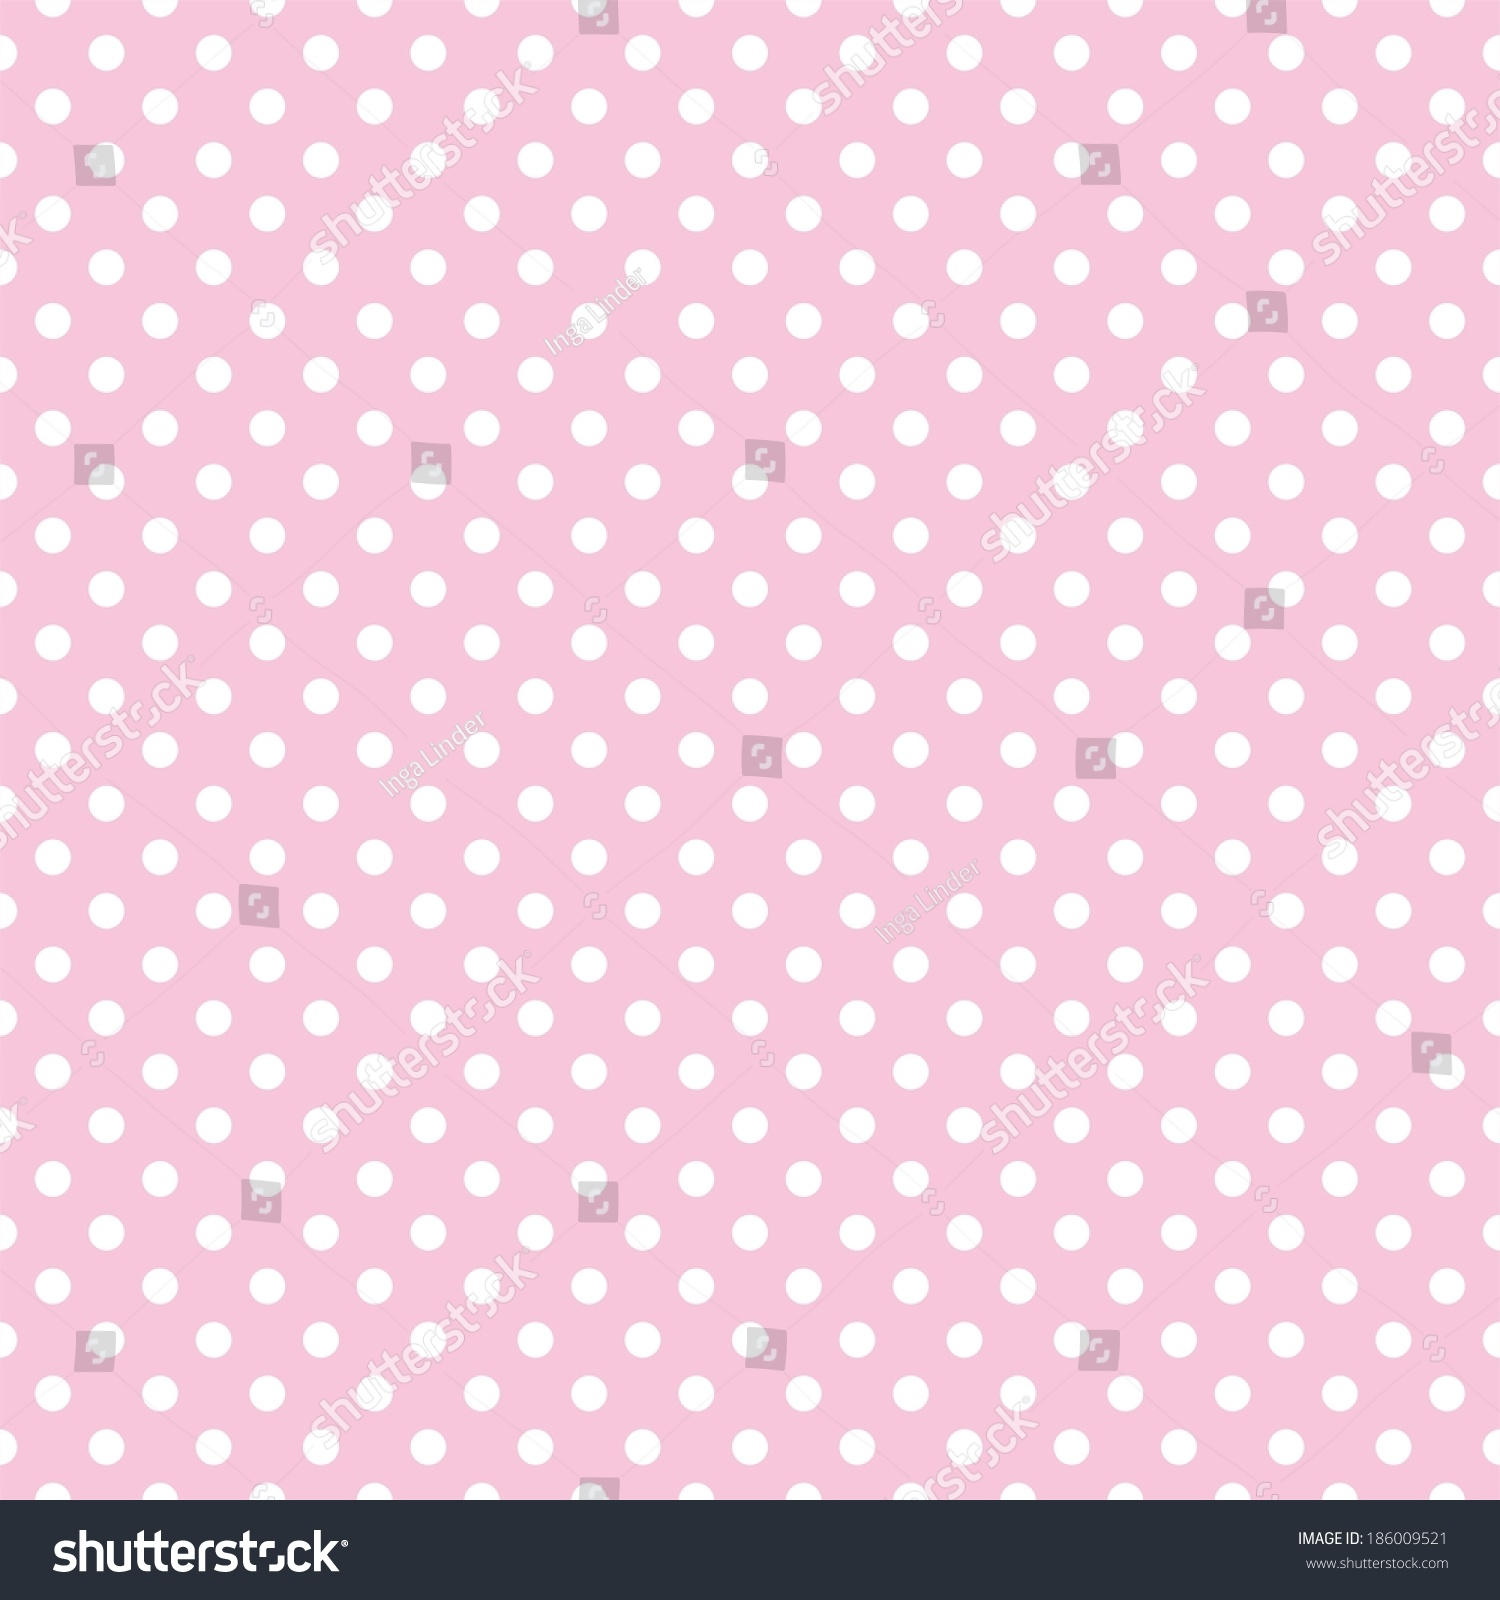 Pics photos pink polka dot s wallpaper - Seamless Pattern With White Polka Dots On A Pastel Pink Background For Desktop Wallpaper Or